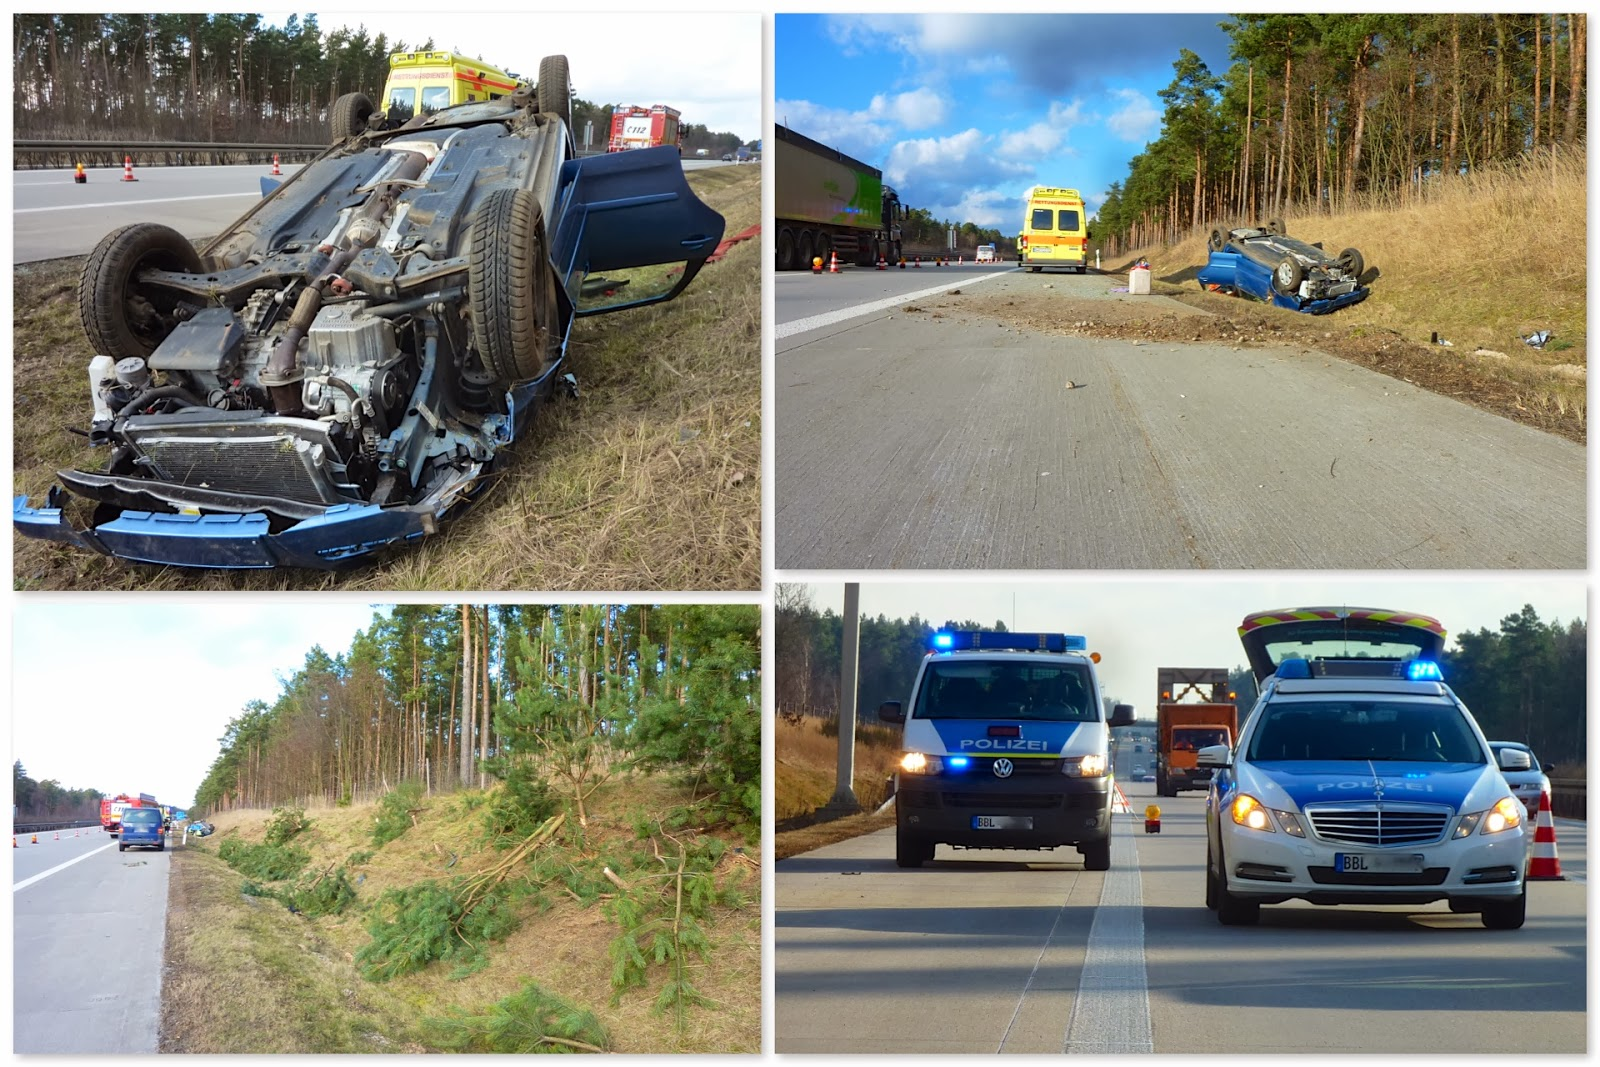 pkw+unfall+12.02.14+(2)